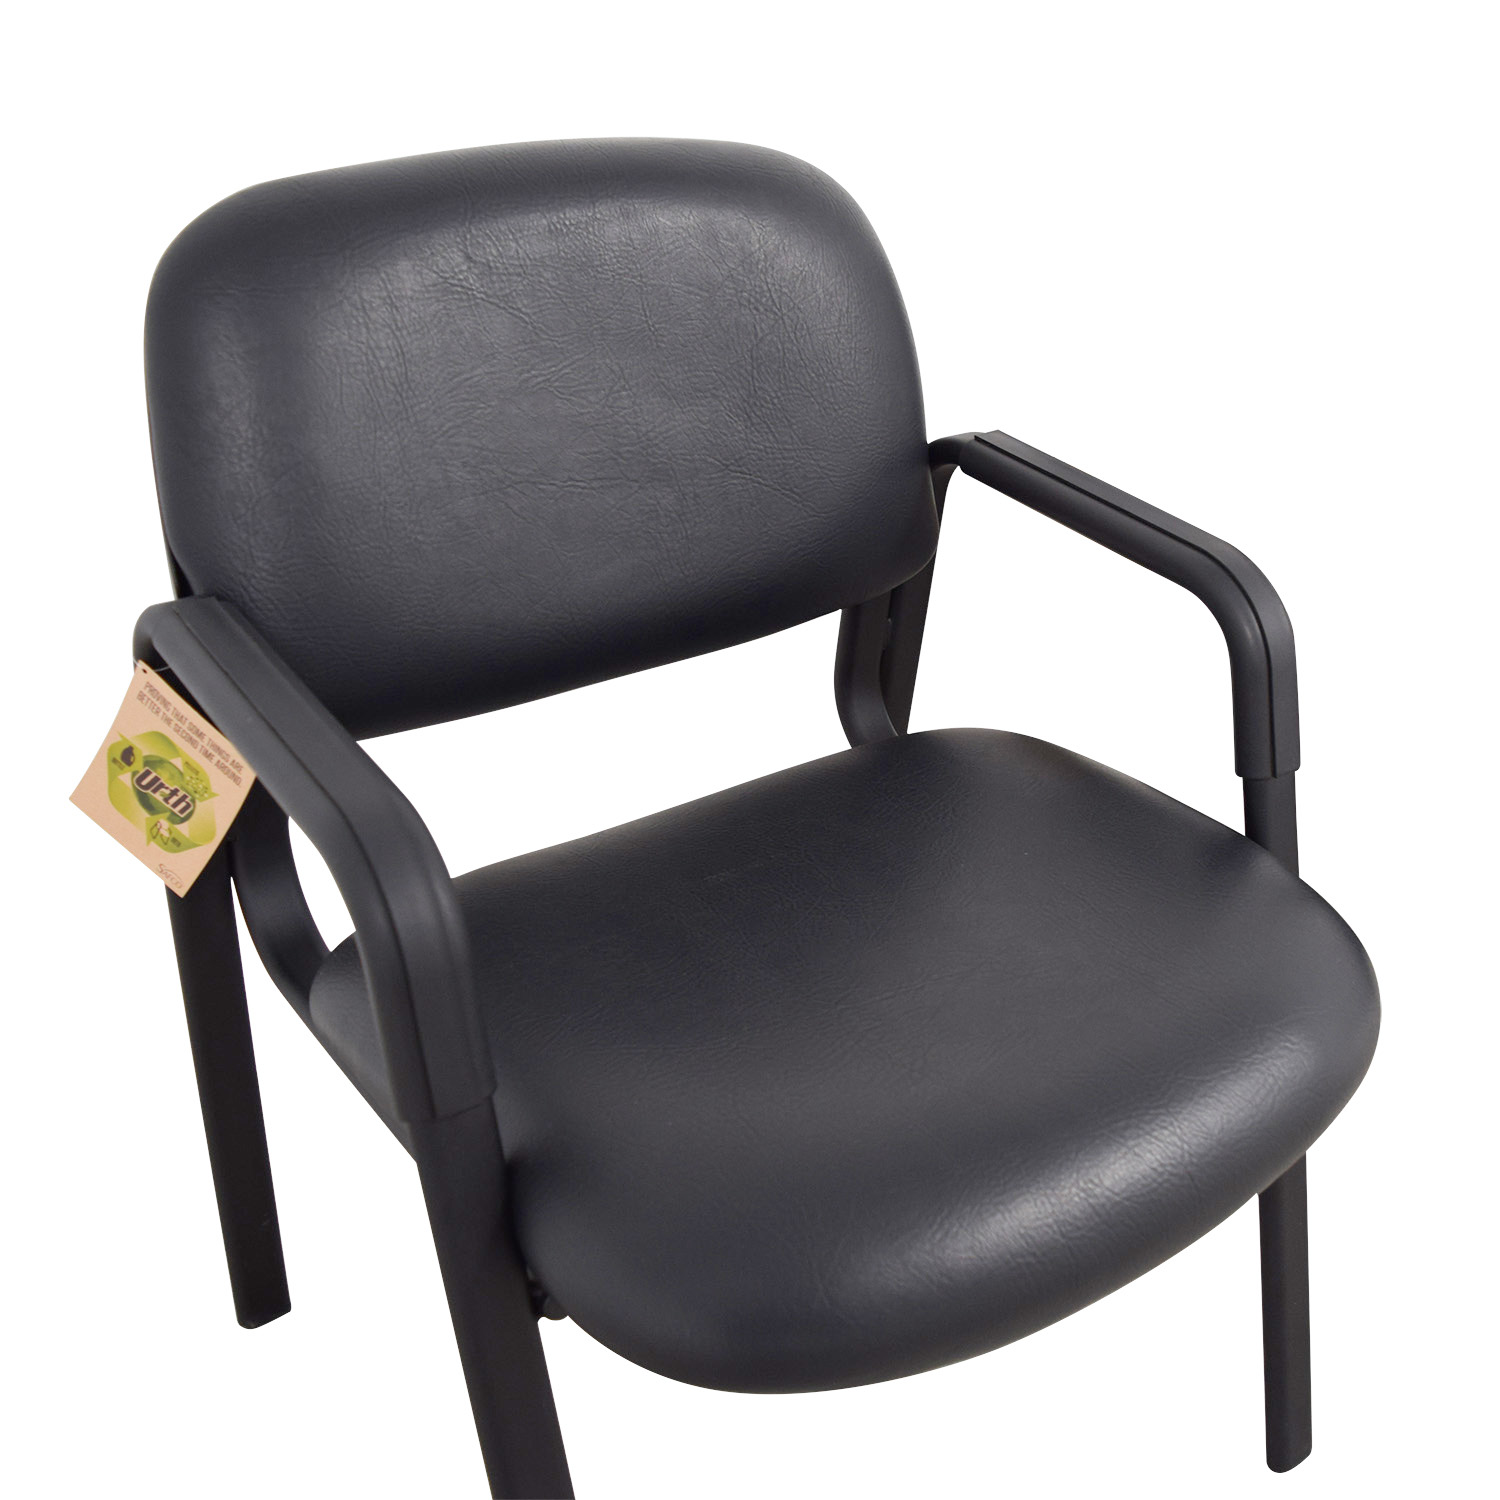 42% OFF Urth Urth Cava Black Leather Chairs Chairs